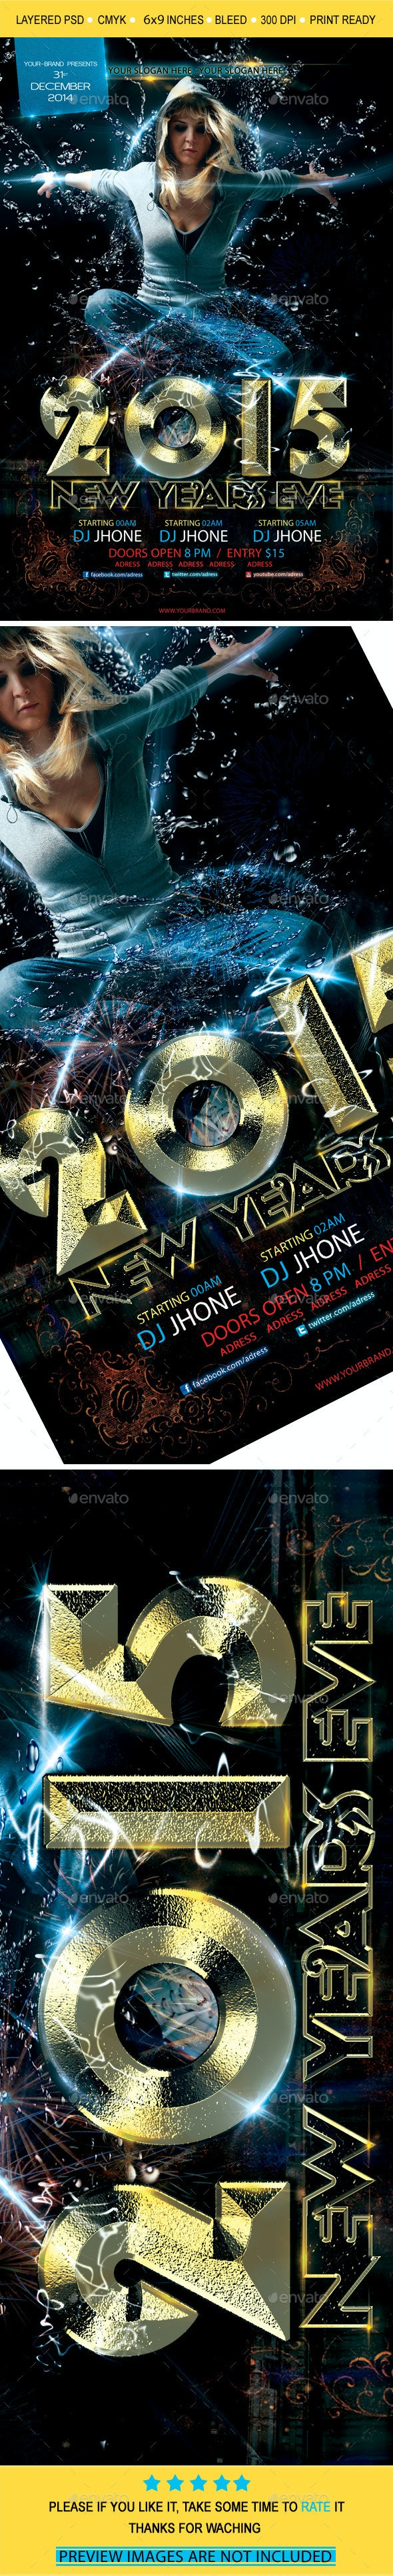 2015 New Year Flyer Template vol2 - Print Templates